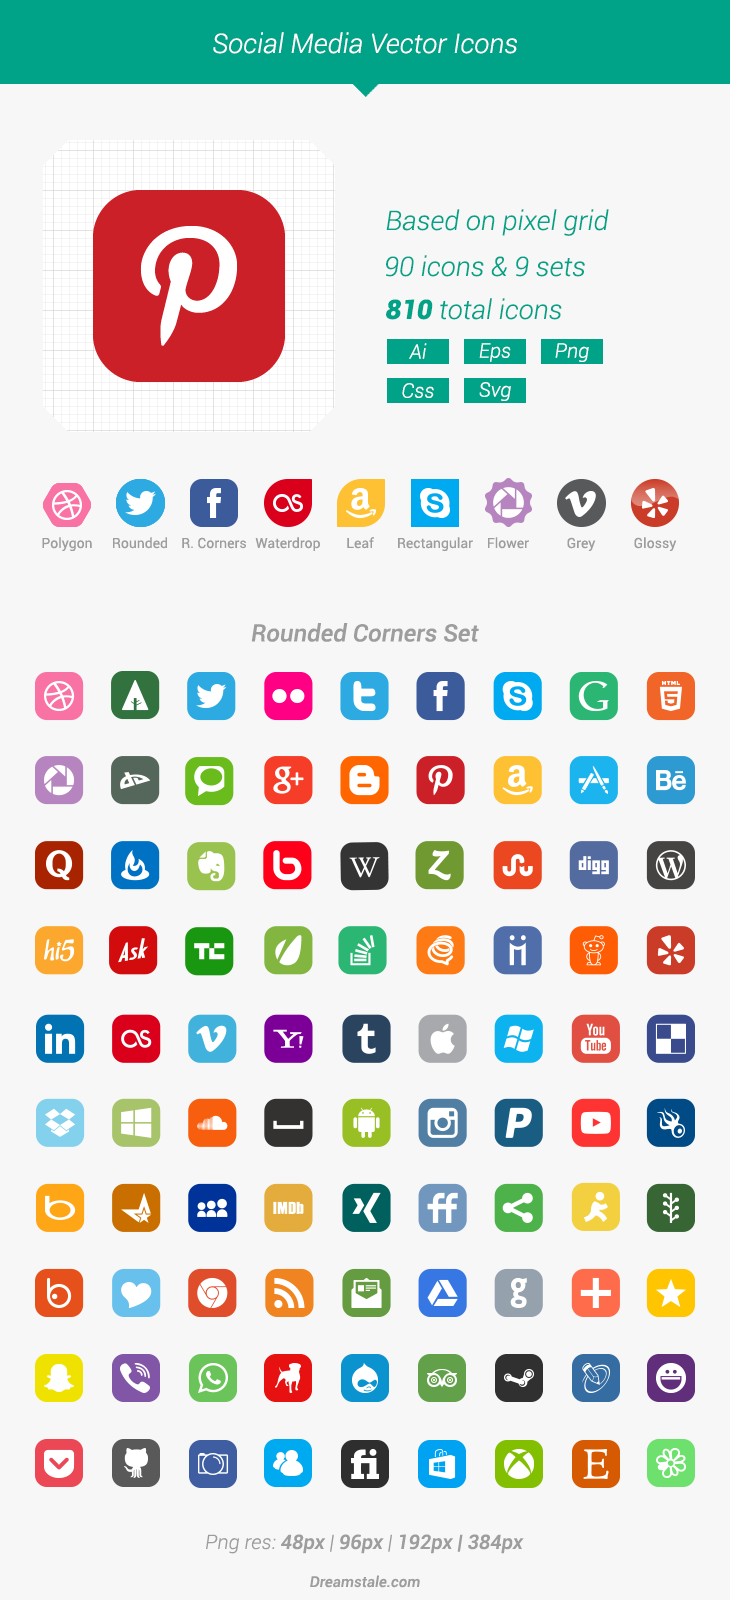 freebie-90-free-social-media-vector-icons